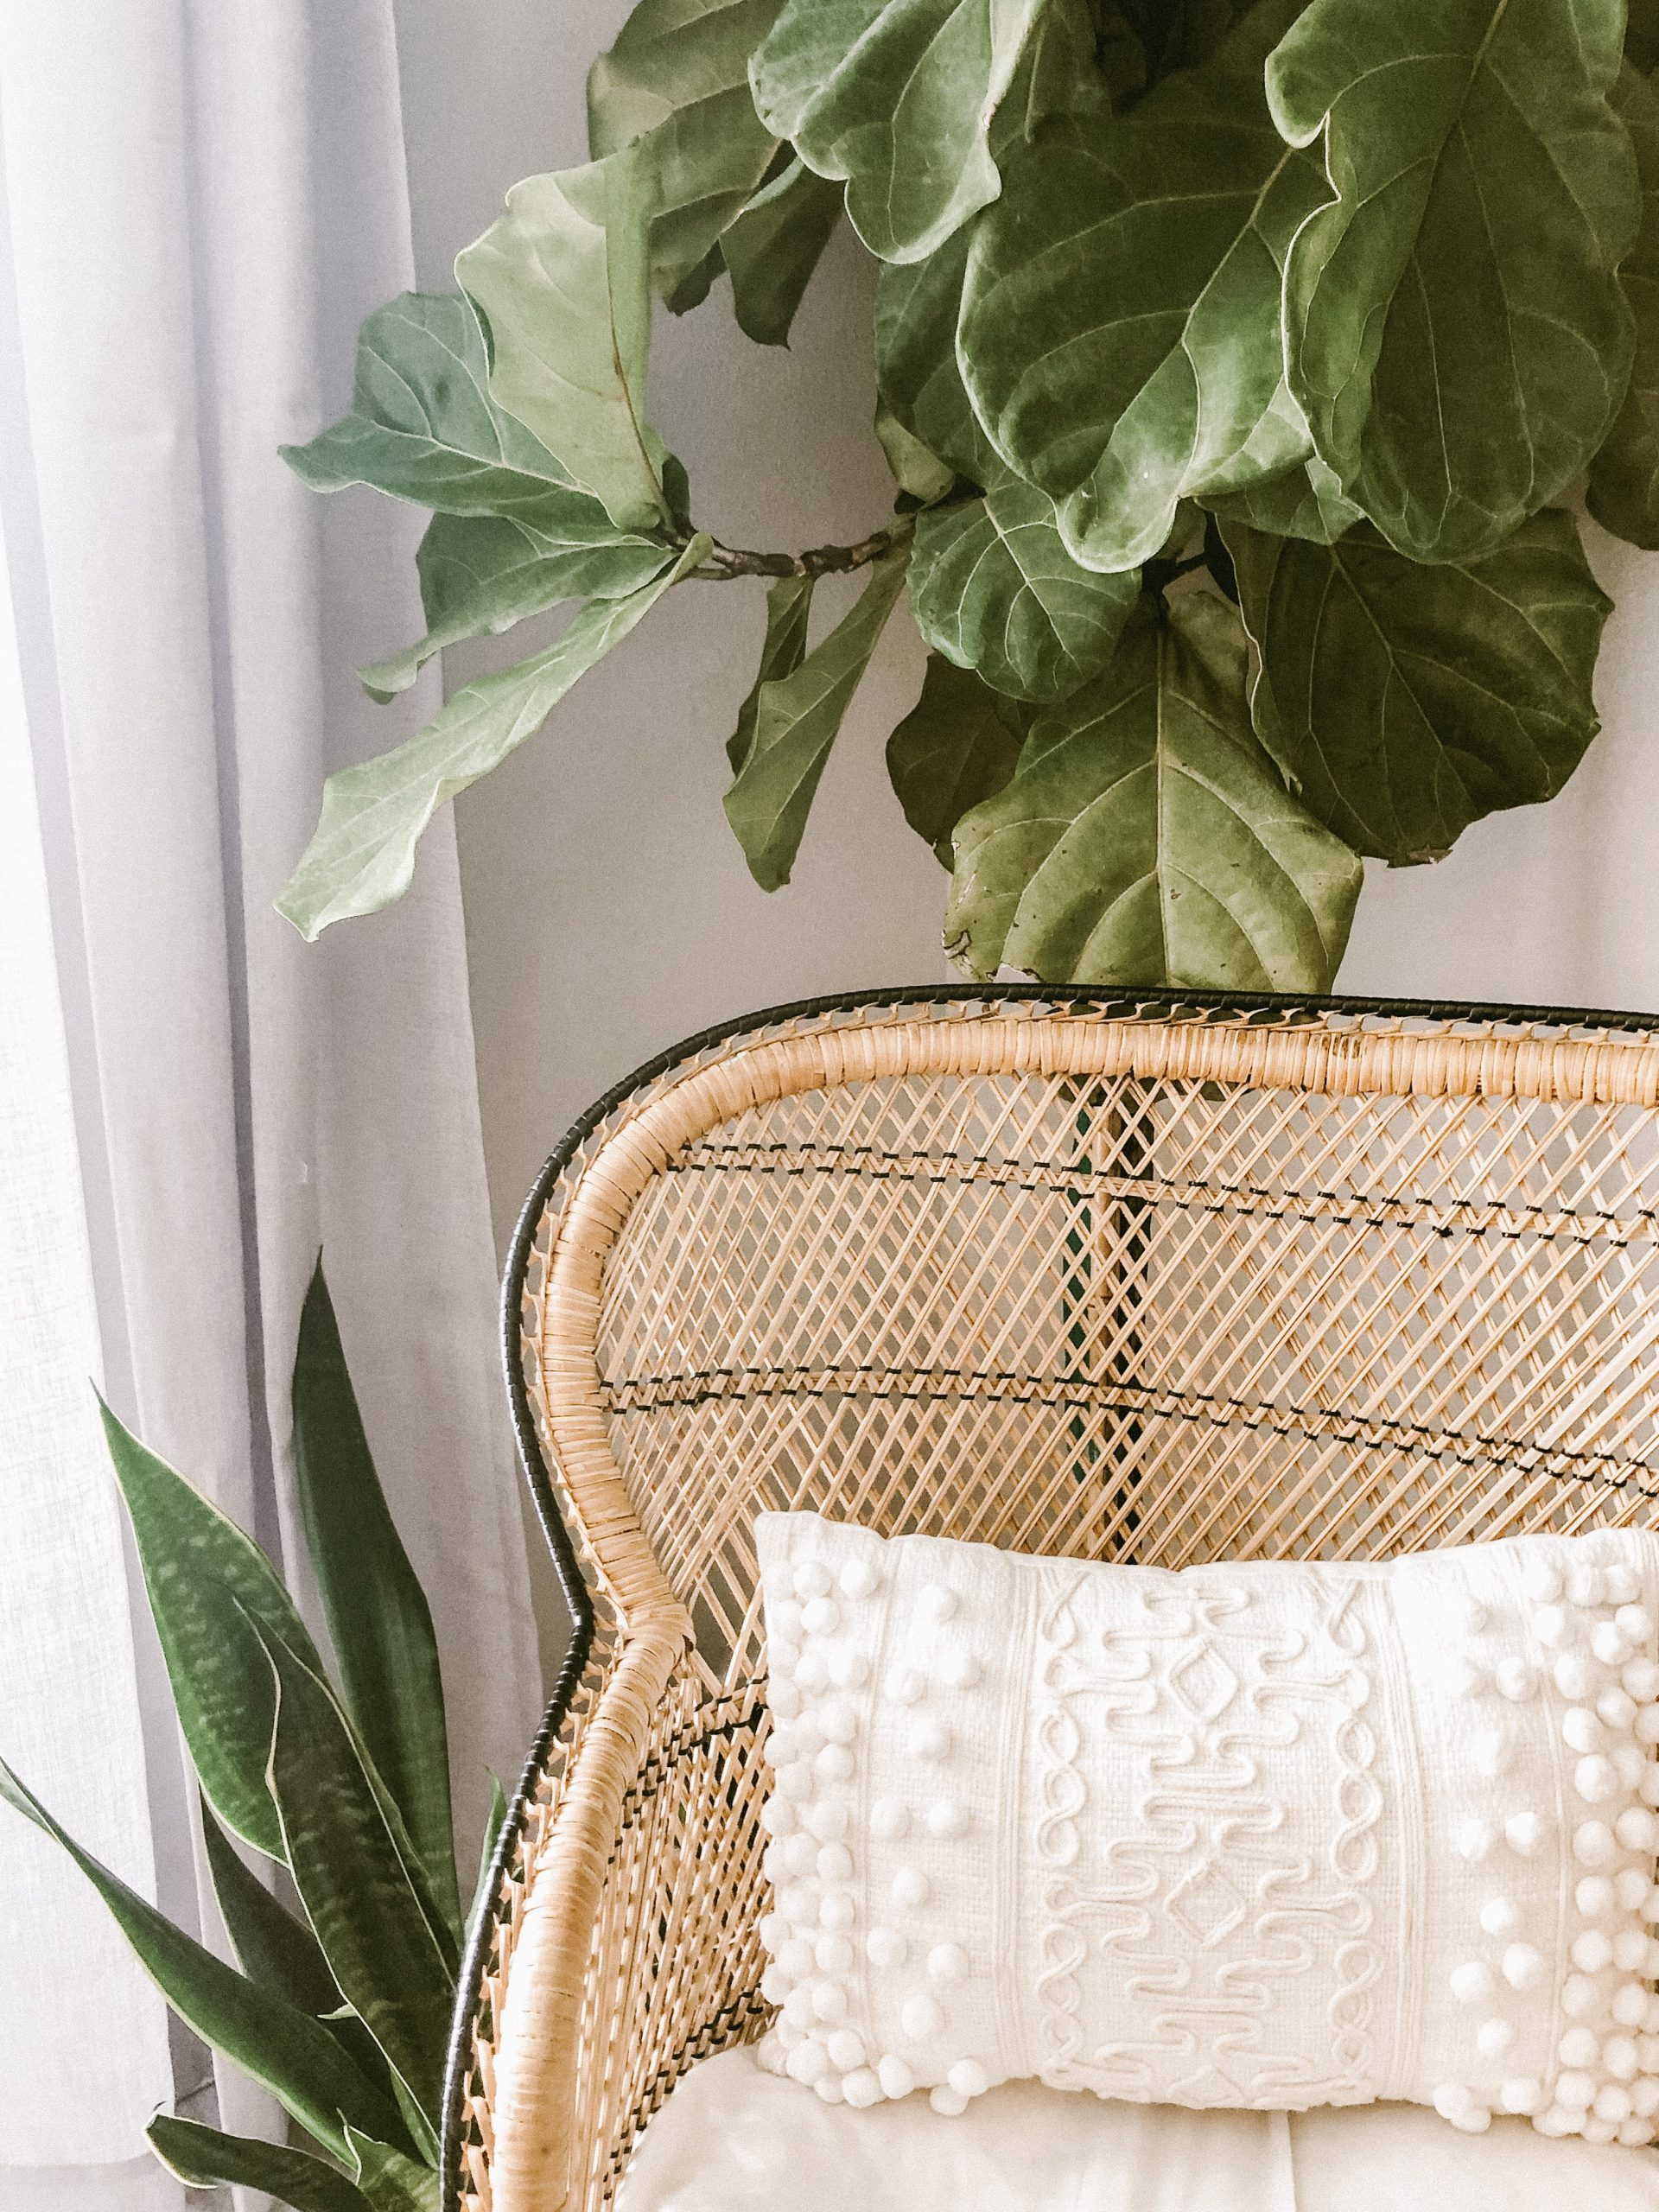 large green plant behind wicker chair; Interior Design Trends You're Likely To See In 2022